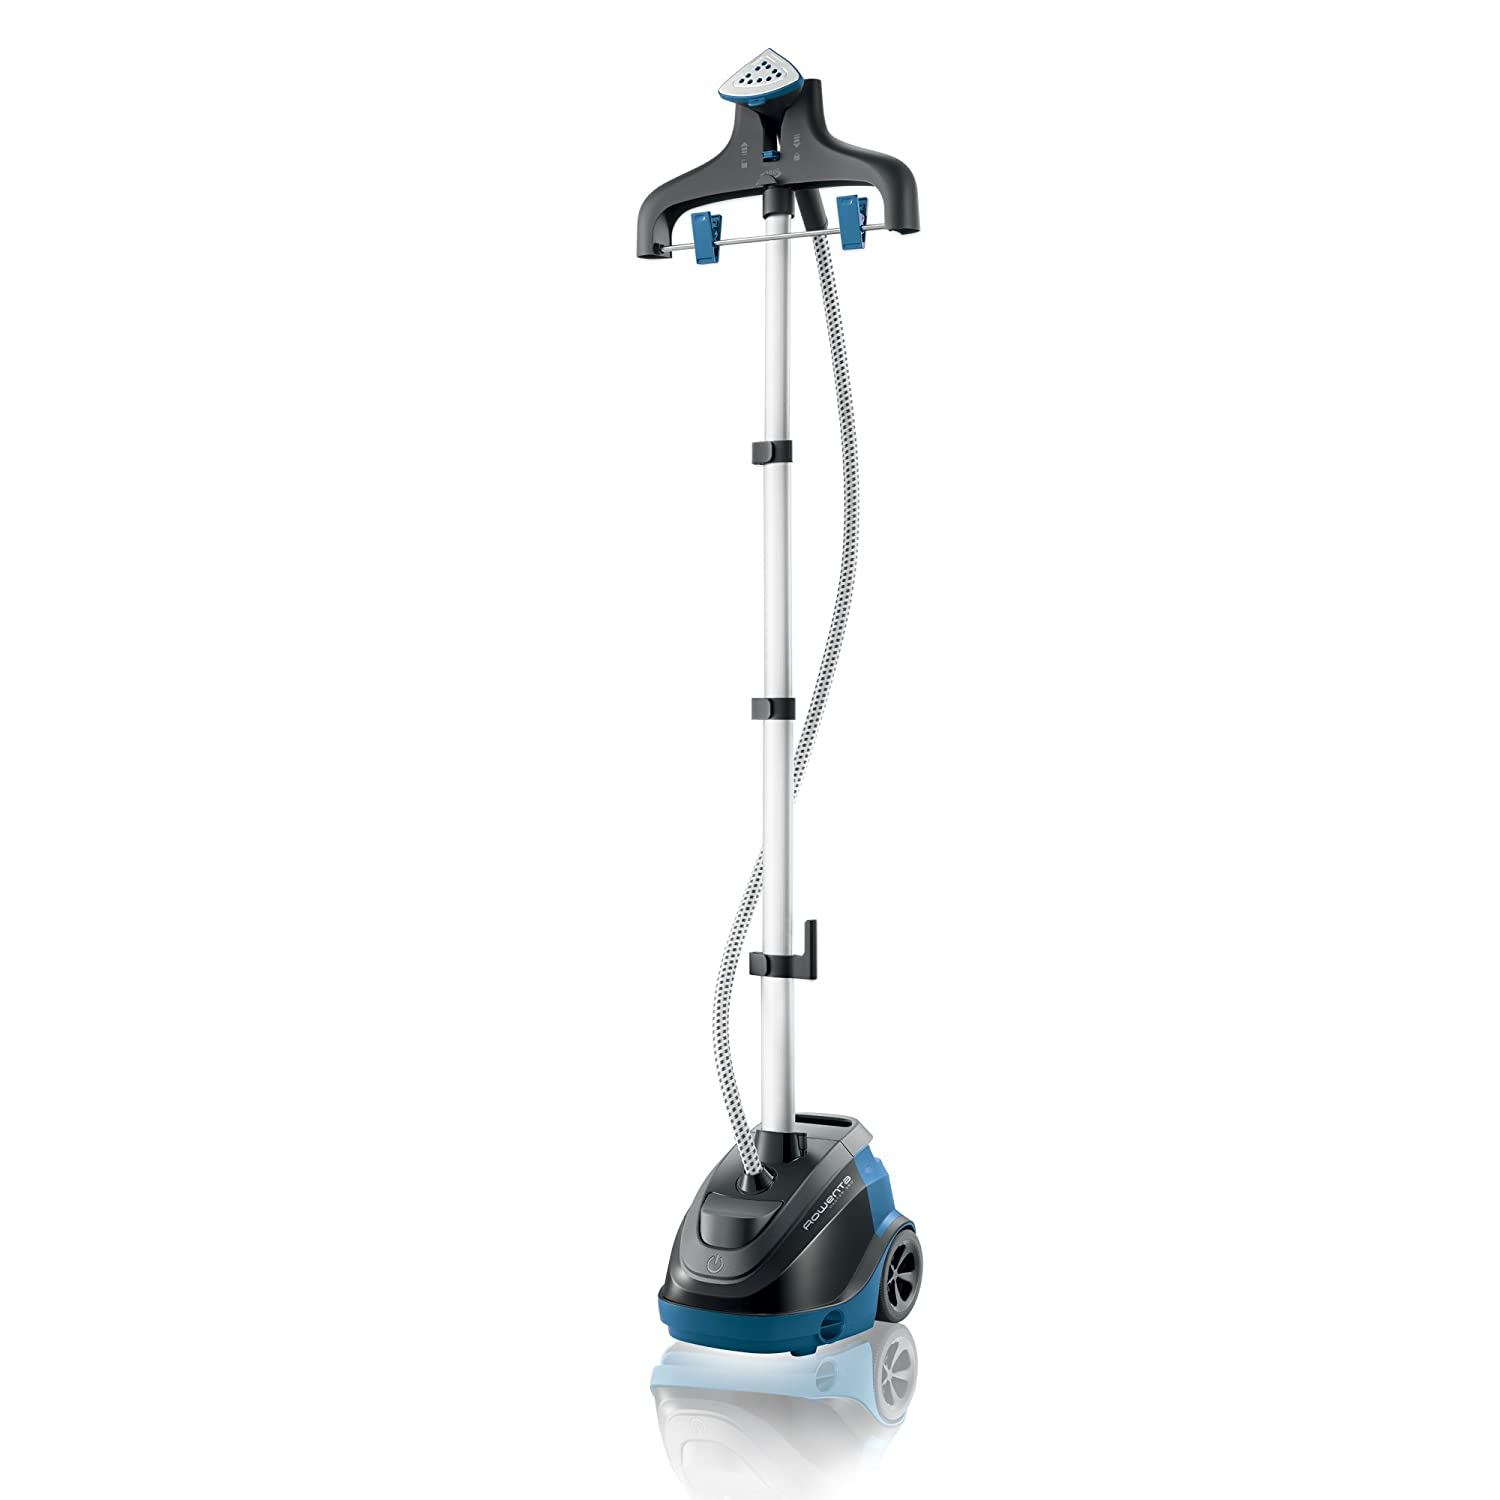 Rowenta IS6520 Master 360 Garment Steamer 1500-Watt Black